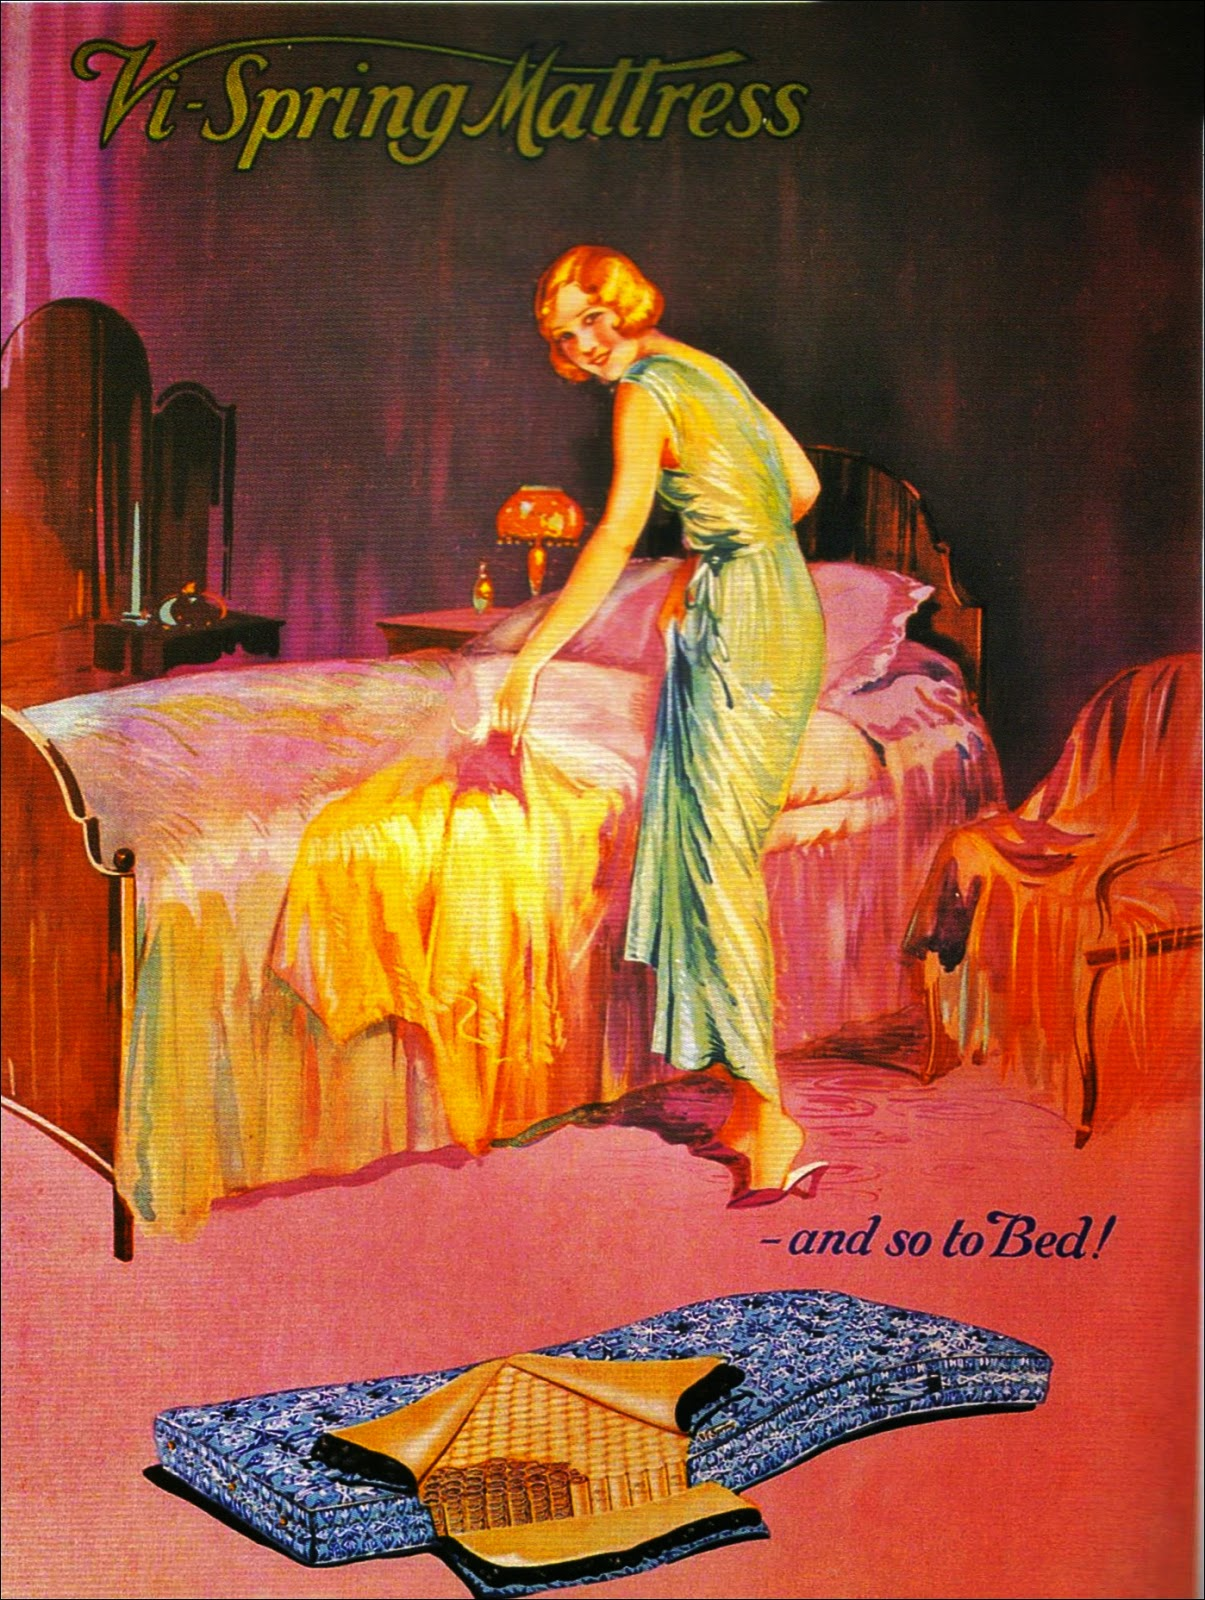 1920s Vi Spring mattress advert